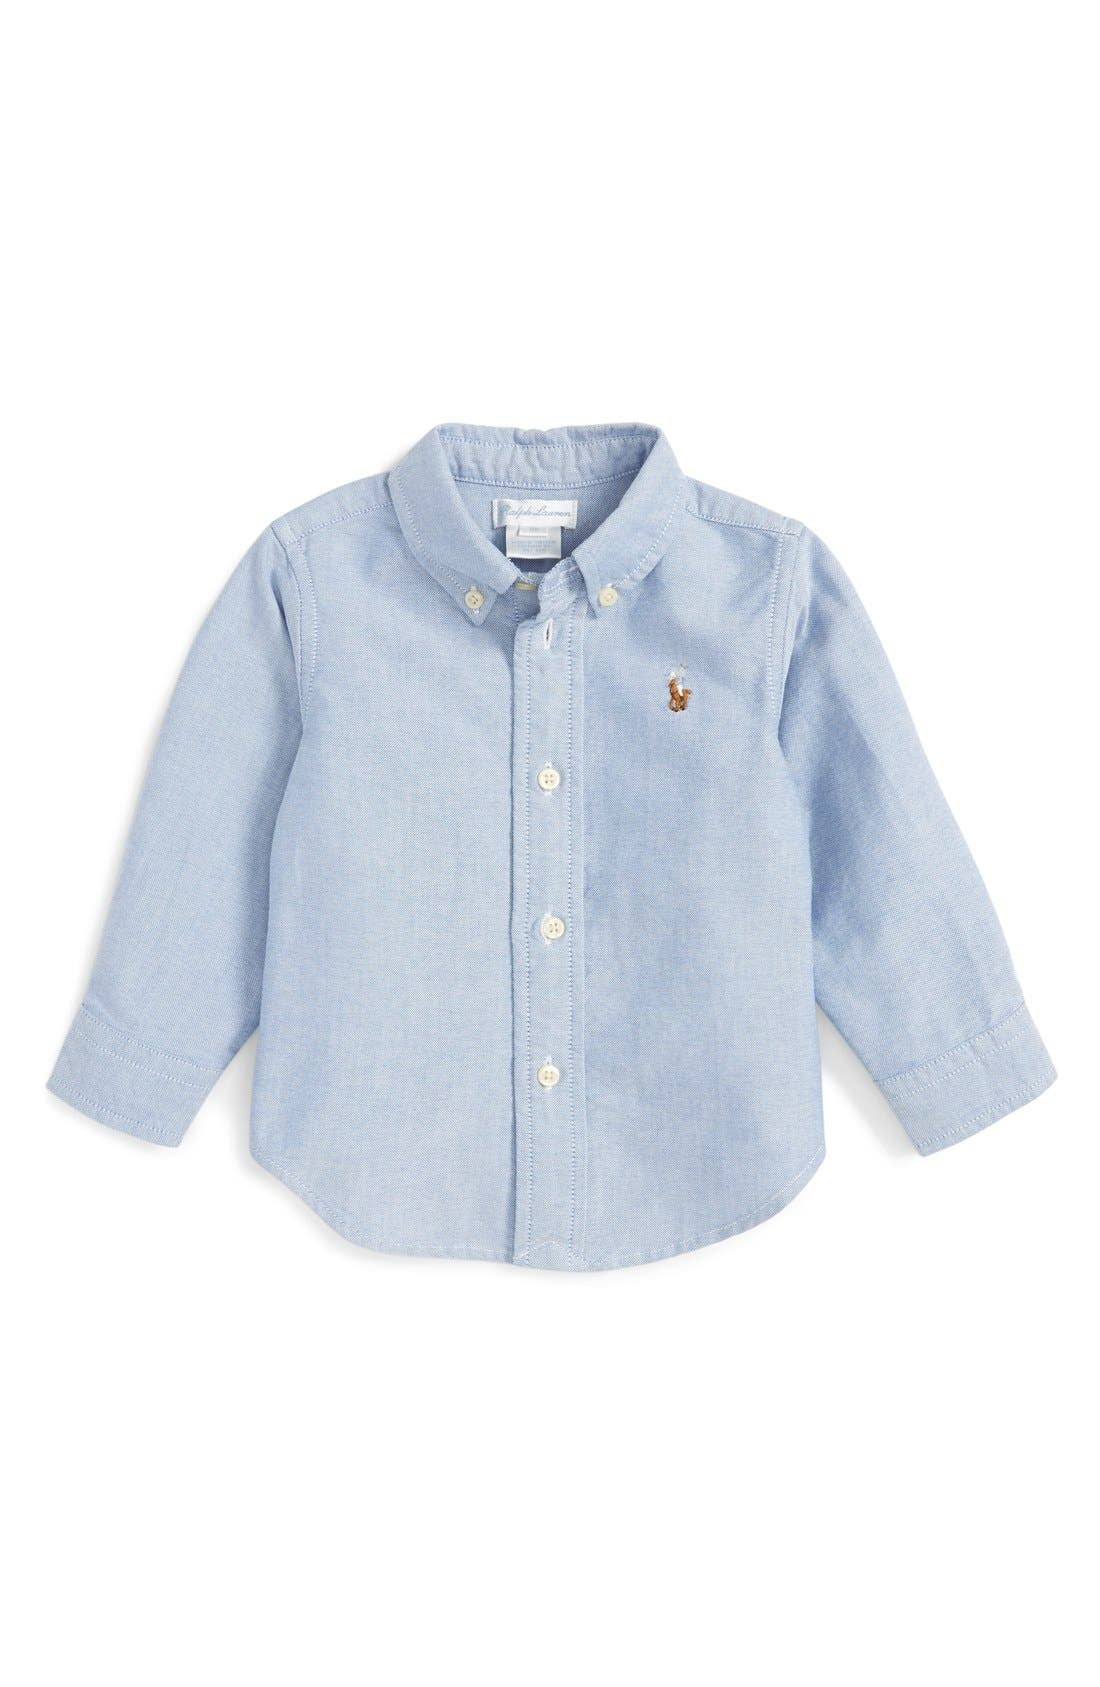 Ralph Lauren Oxford Shirt (Baby Boys)